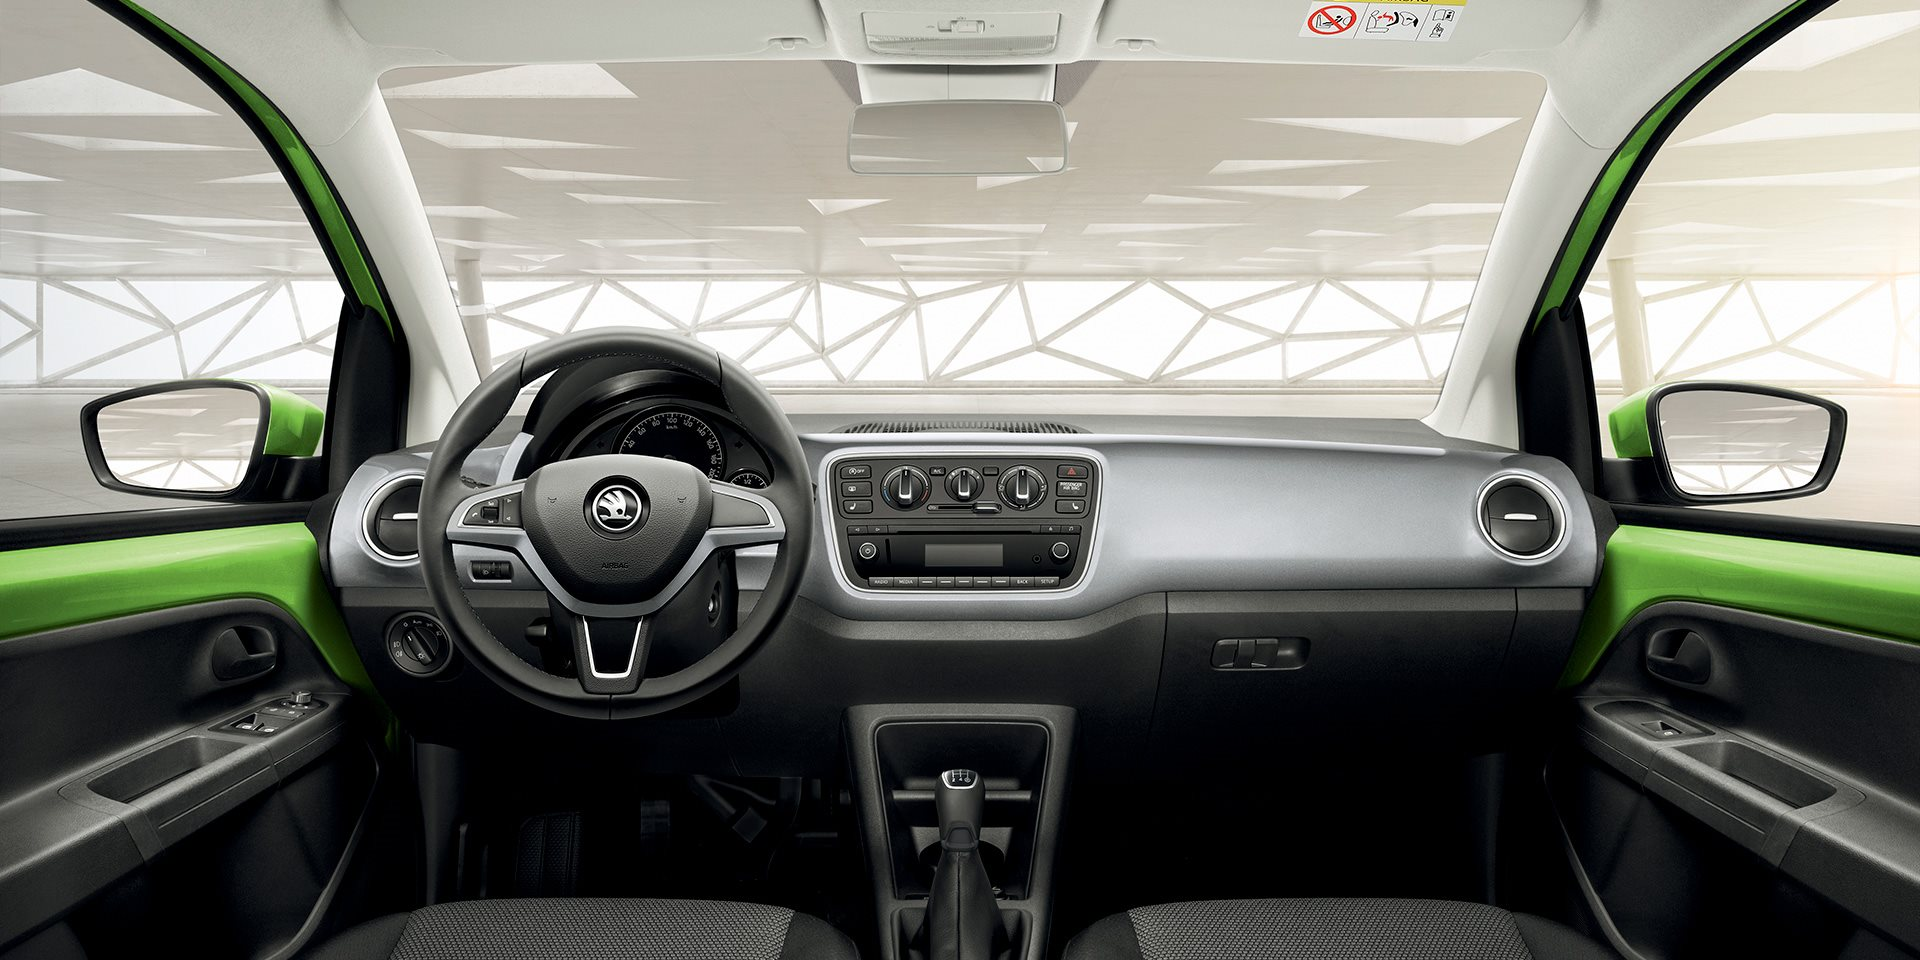 skoda-citigo-5d-m68-interior-01.9a3e64a9d16b2b23d21541be011c5257.fill-1920x960